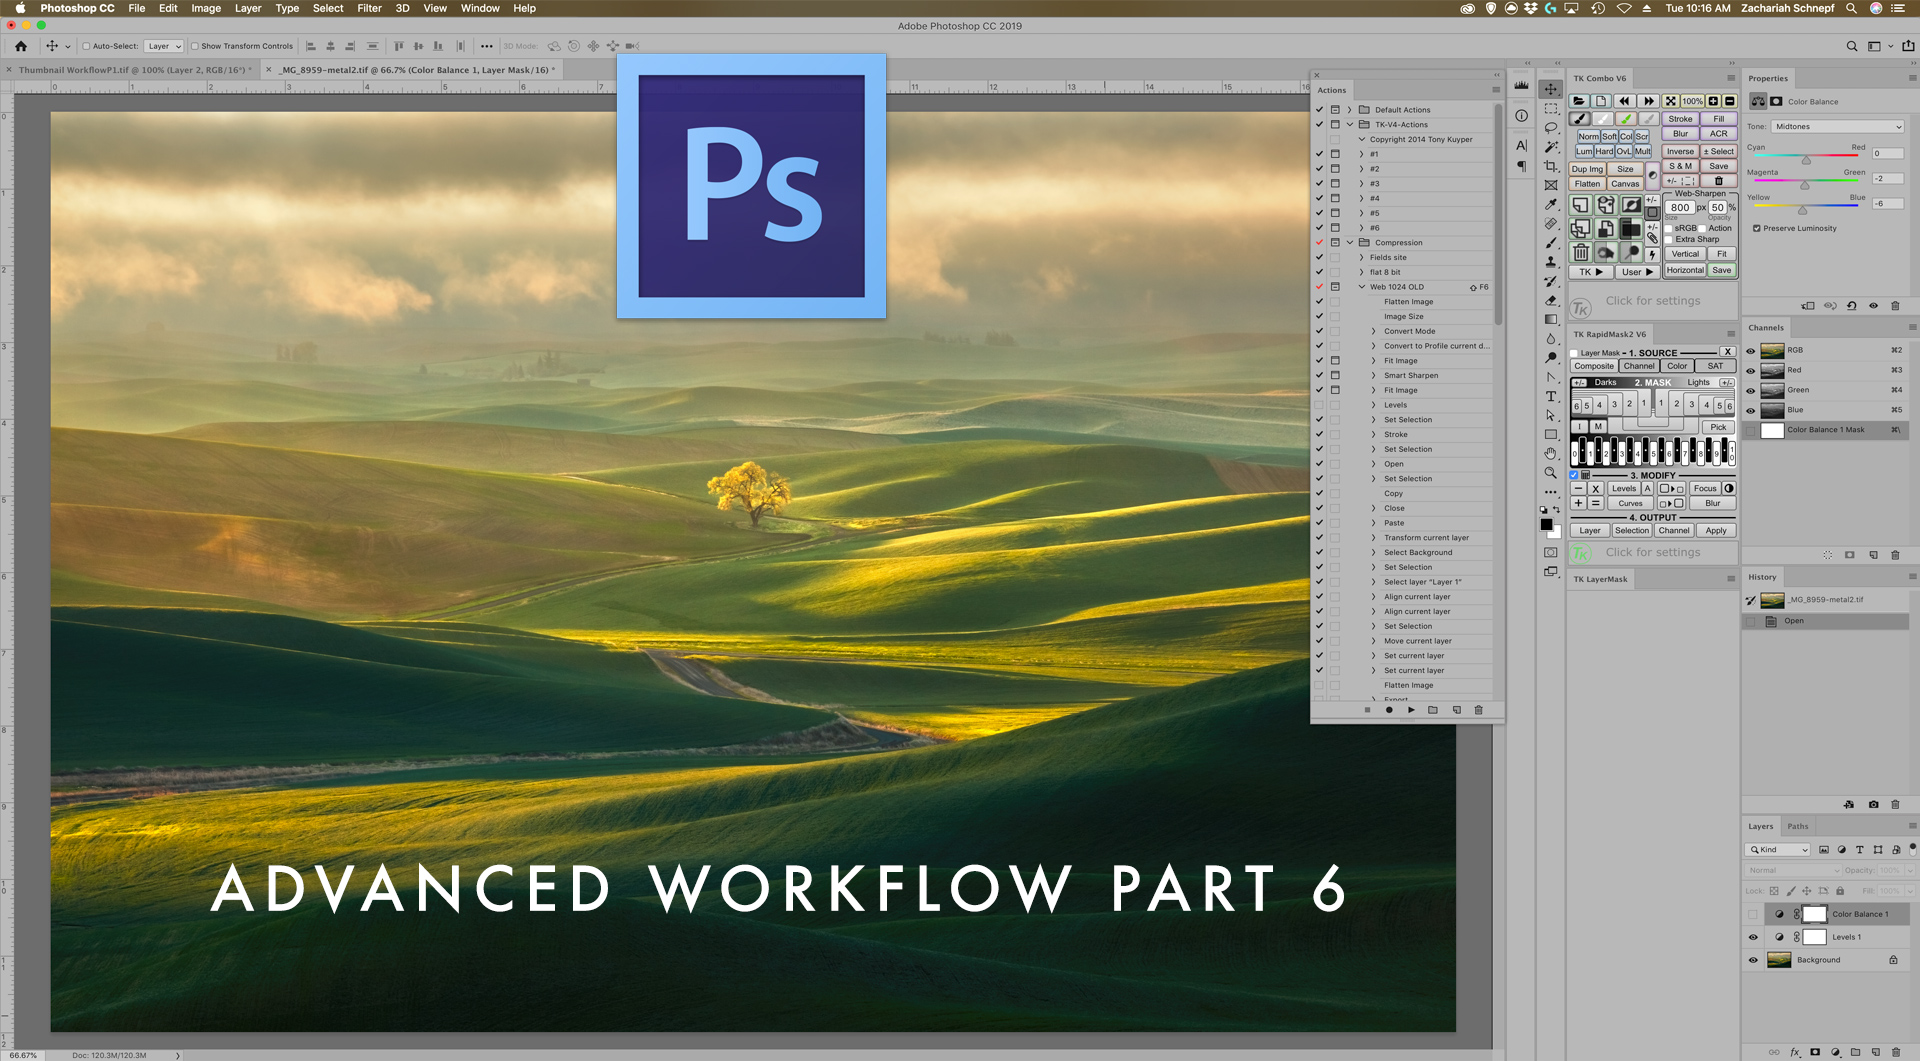 Building Actions to Automate Repetitive Tasks in Photoshop